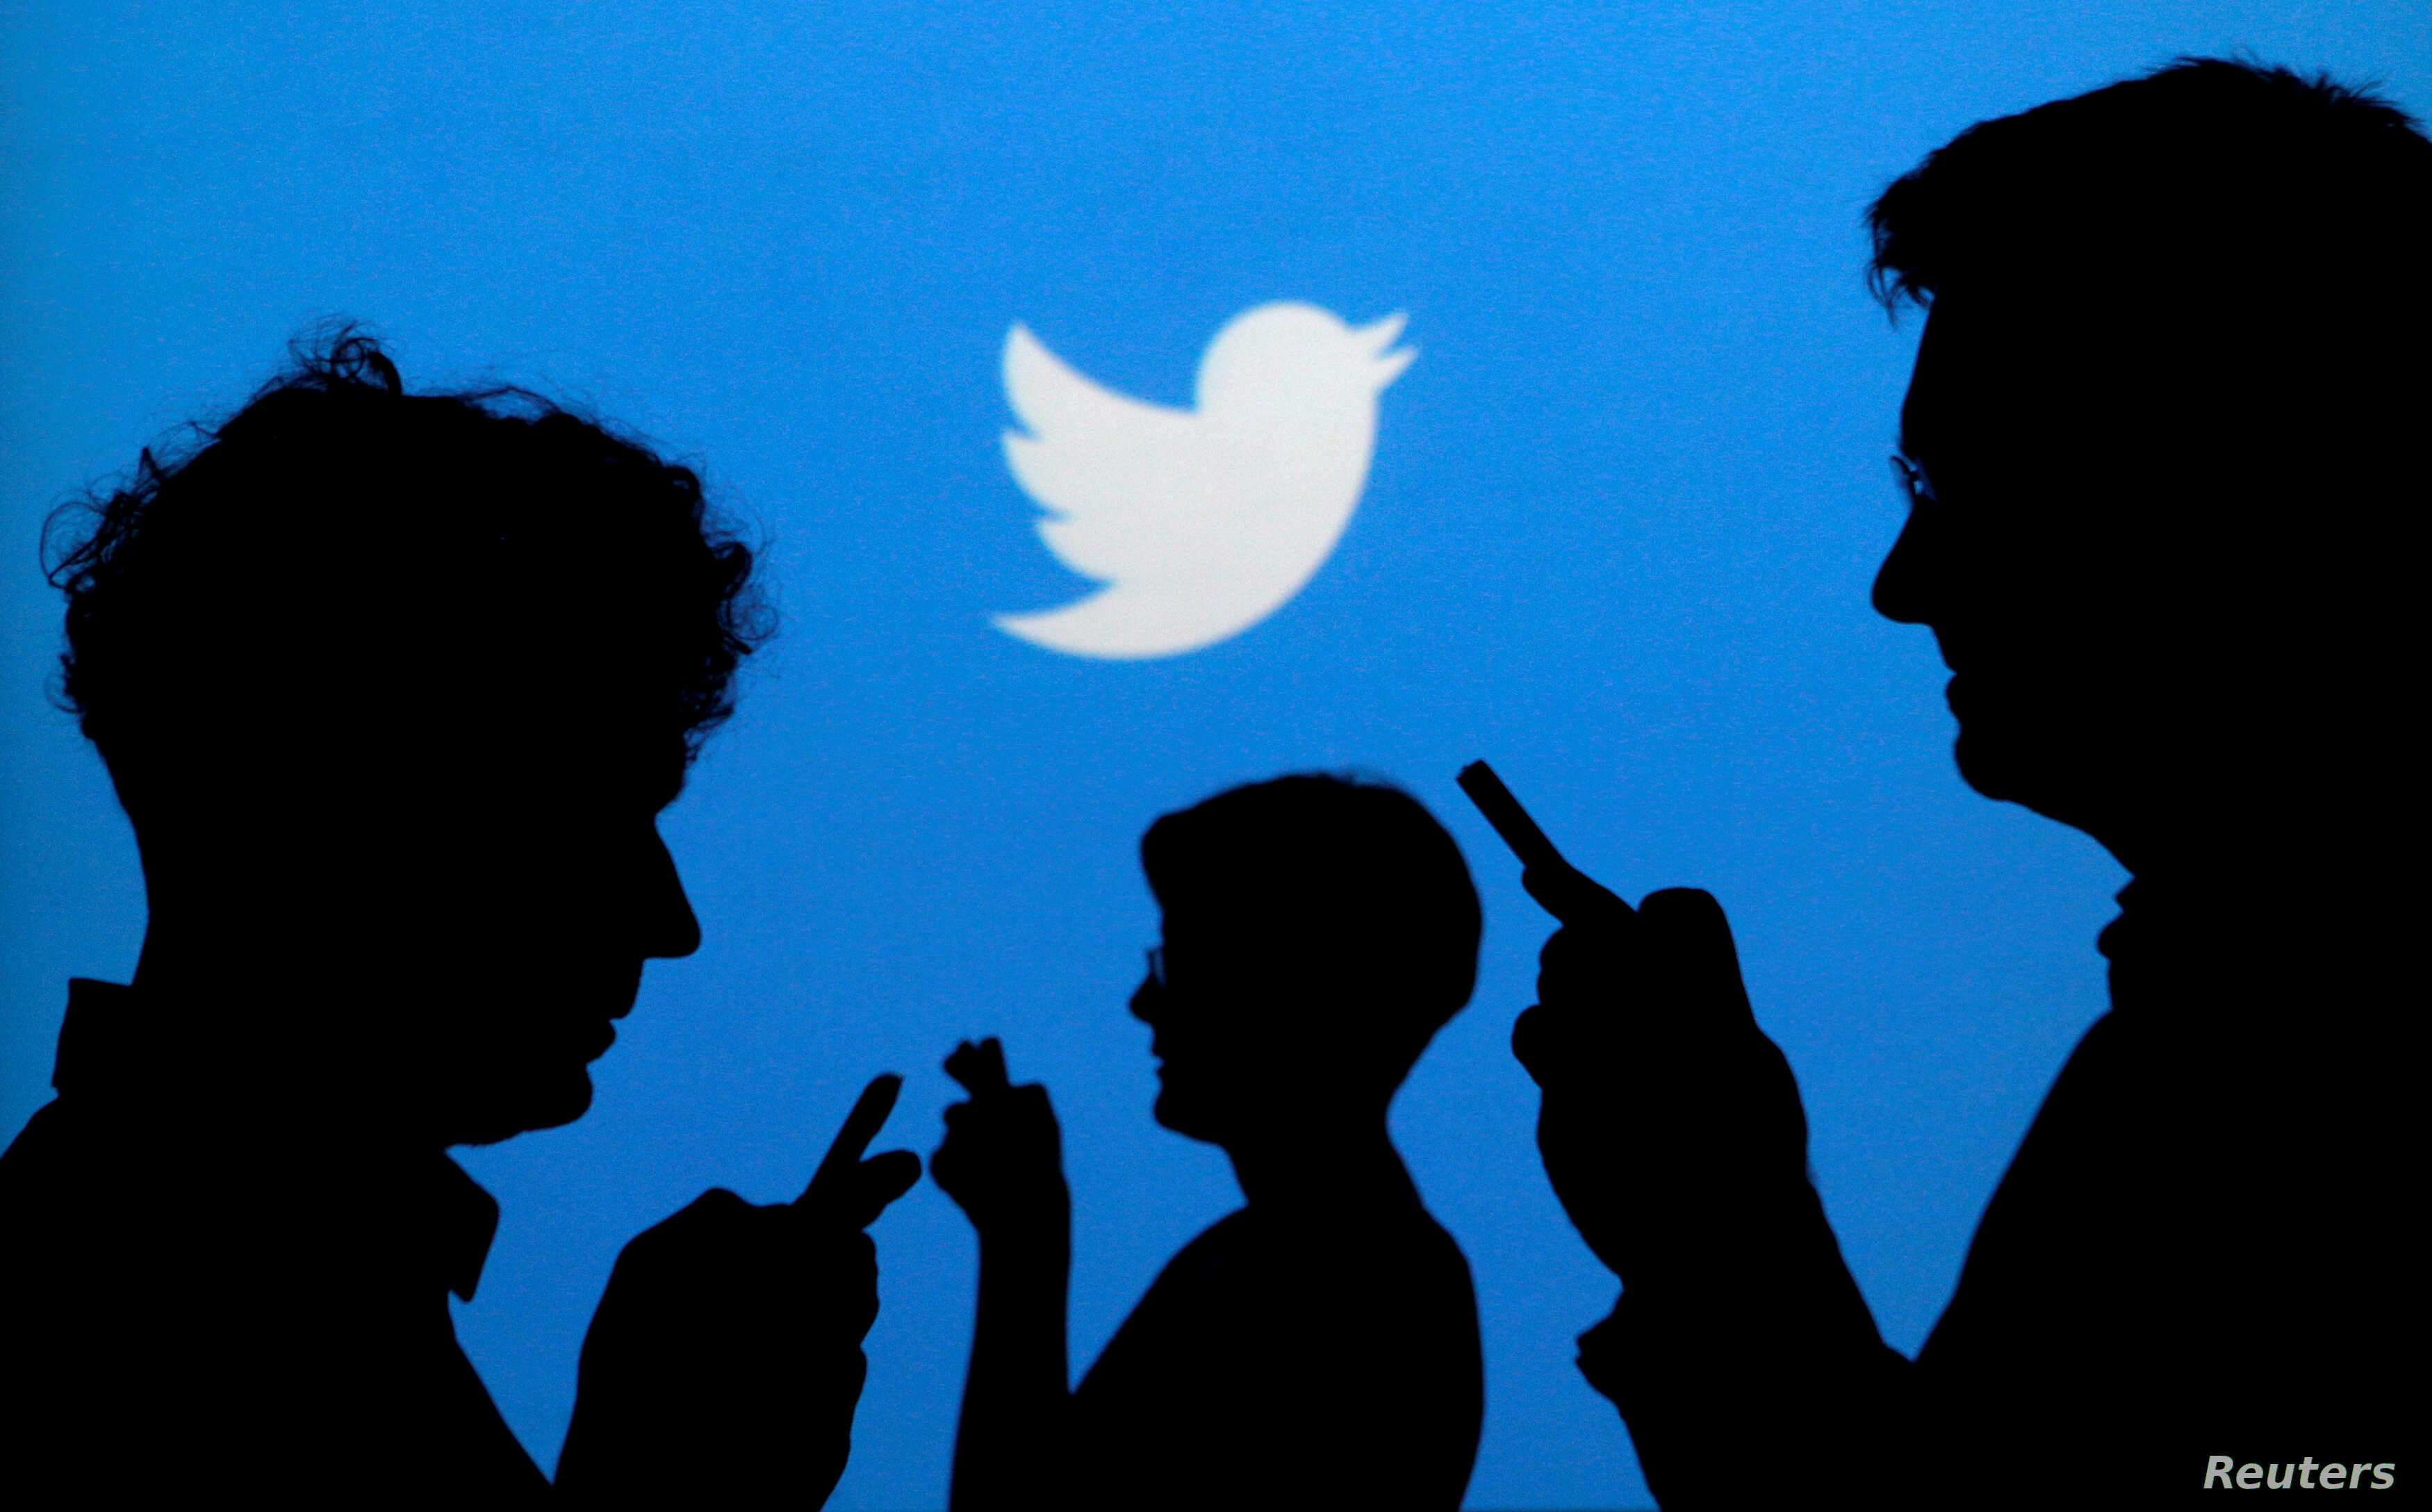 FILE PHOTO: People holding mobile phones are silhouetted against a backdrop projected with the Twitter logo in this illustration picture taken September 27, 2013. REUTERS/Kacper Pempel/Illustration/File Photo - S1AEUIXLWVAA